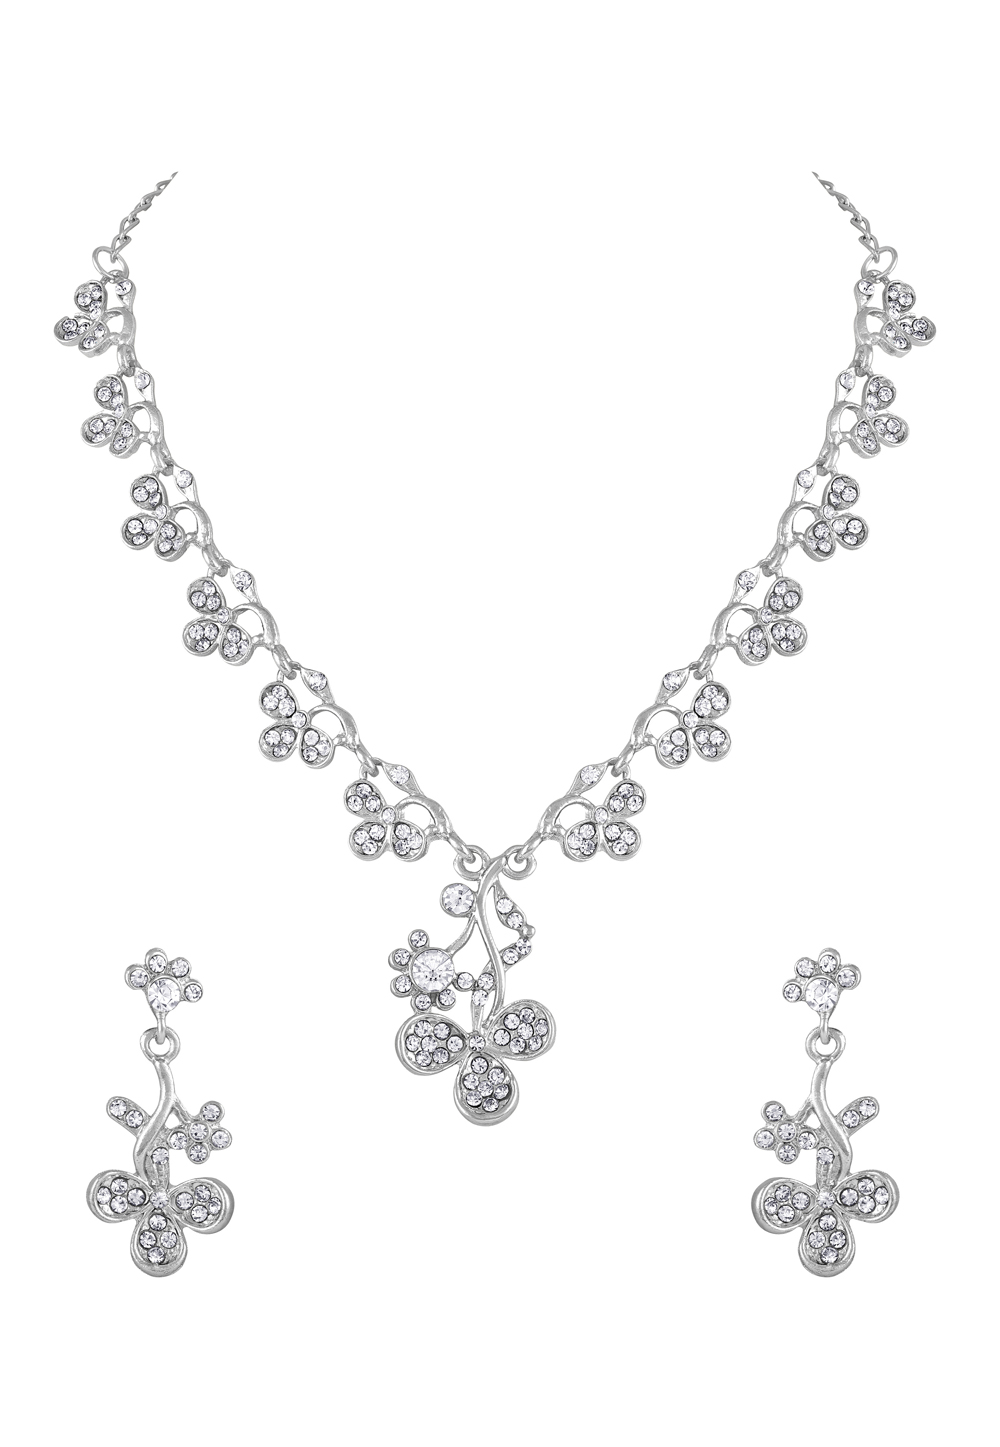 Silver Zinc Necklace Set With Earrings 191920